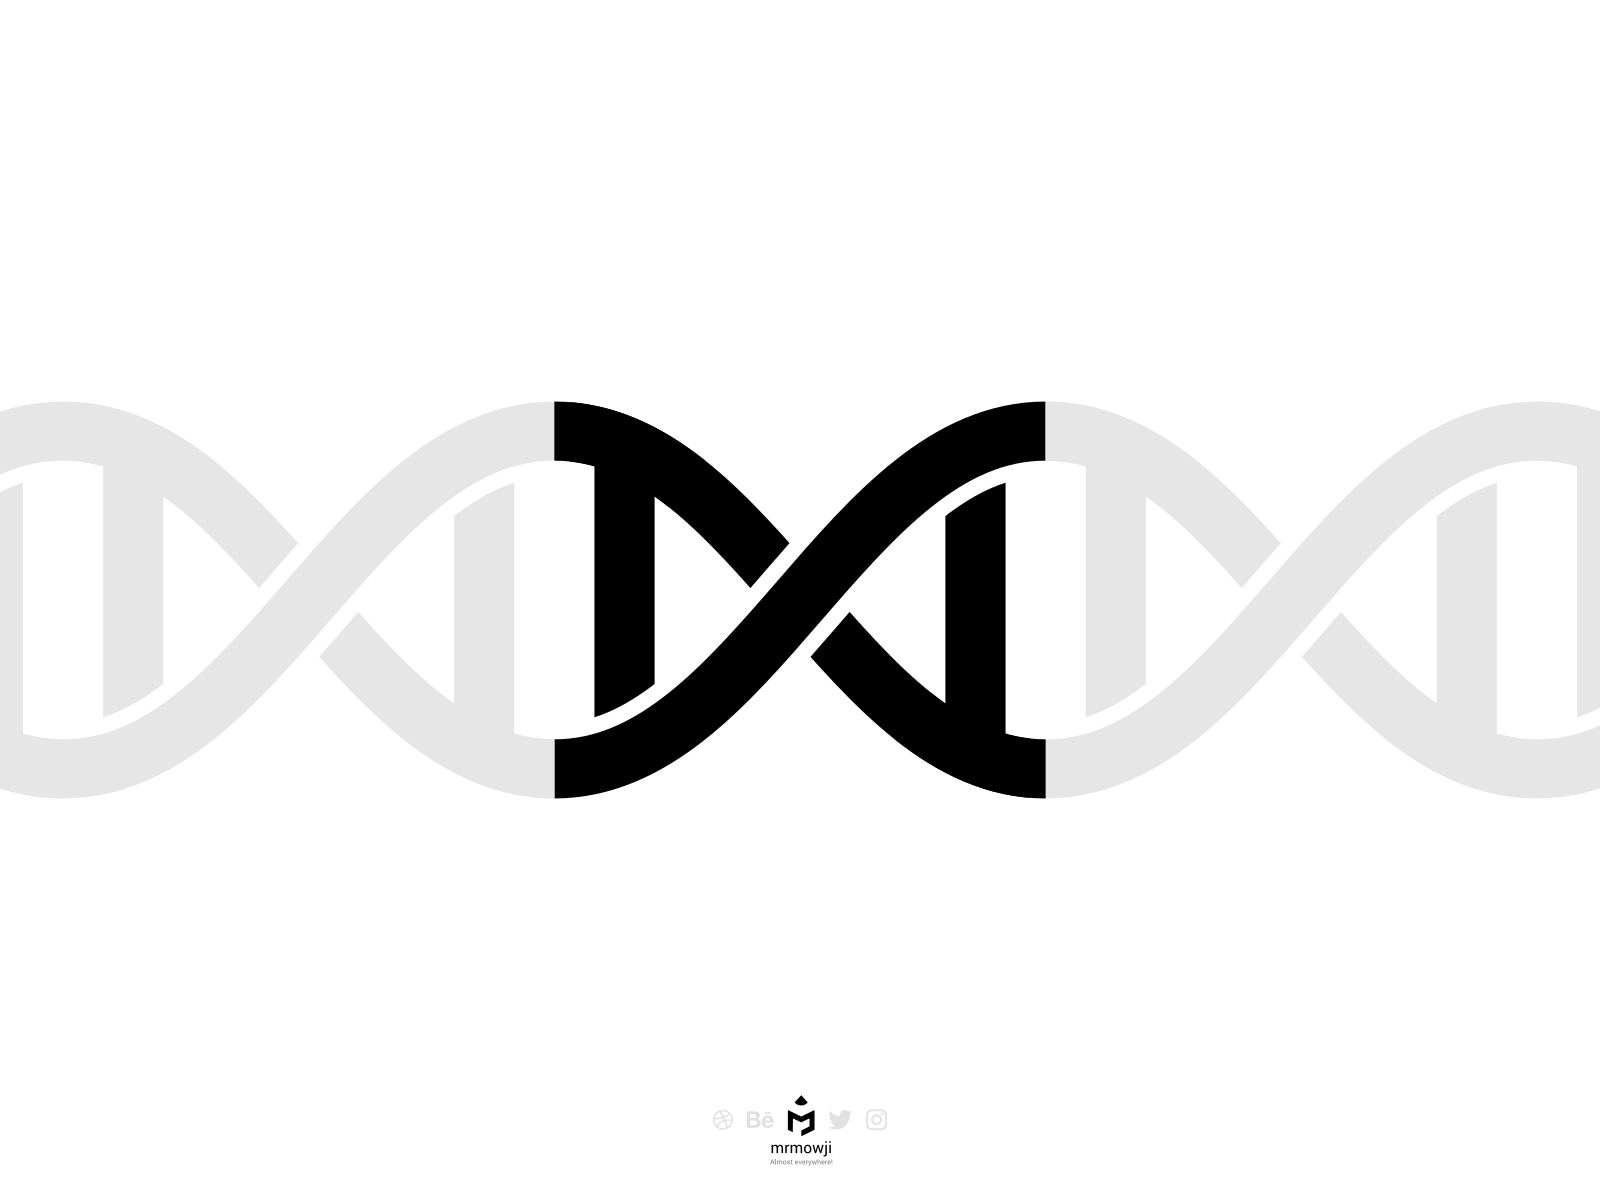 DNA Typography ambigram strand strands simple words word minimalist minimalism minimal meaning english concept vector inkscape bioinformatics typography biology dna